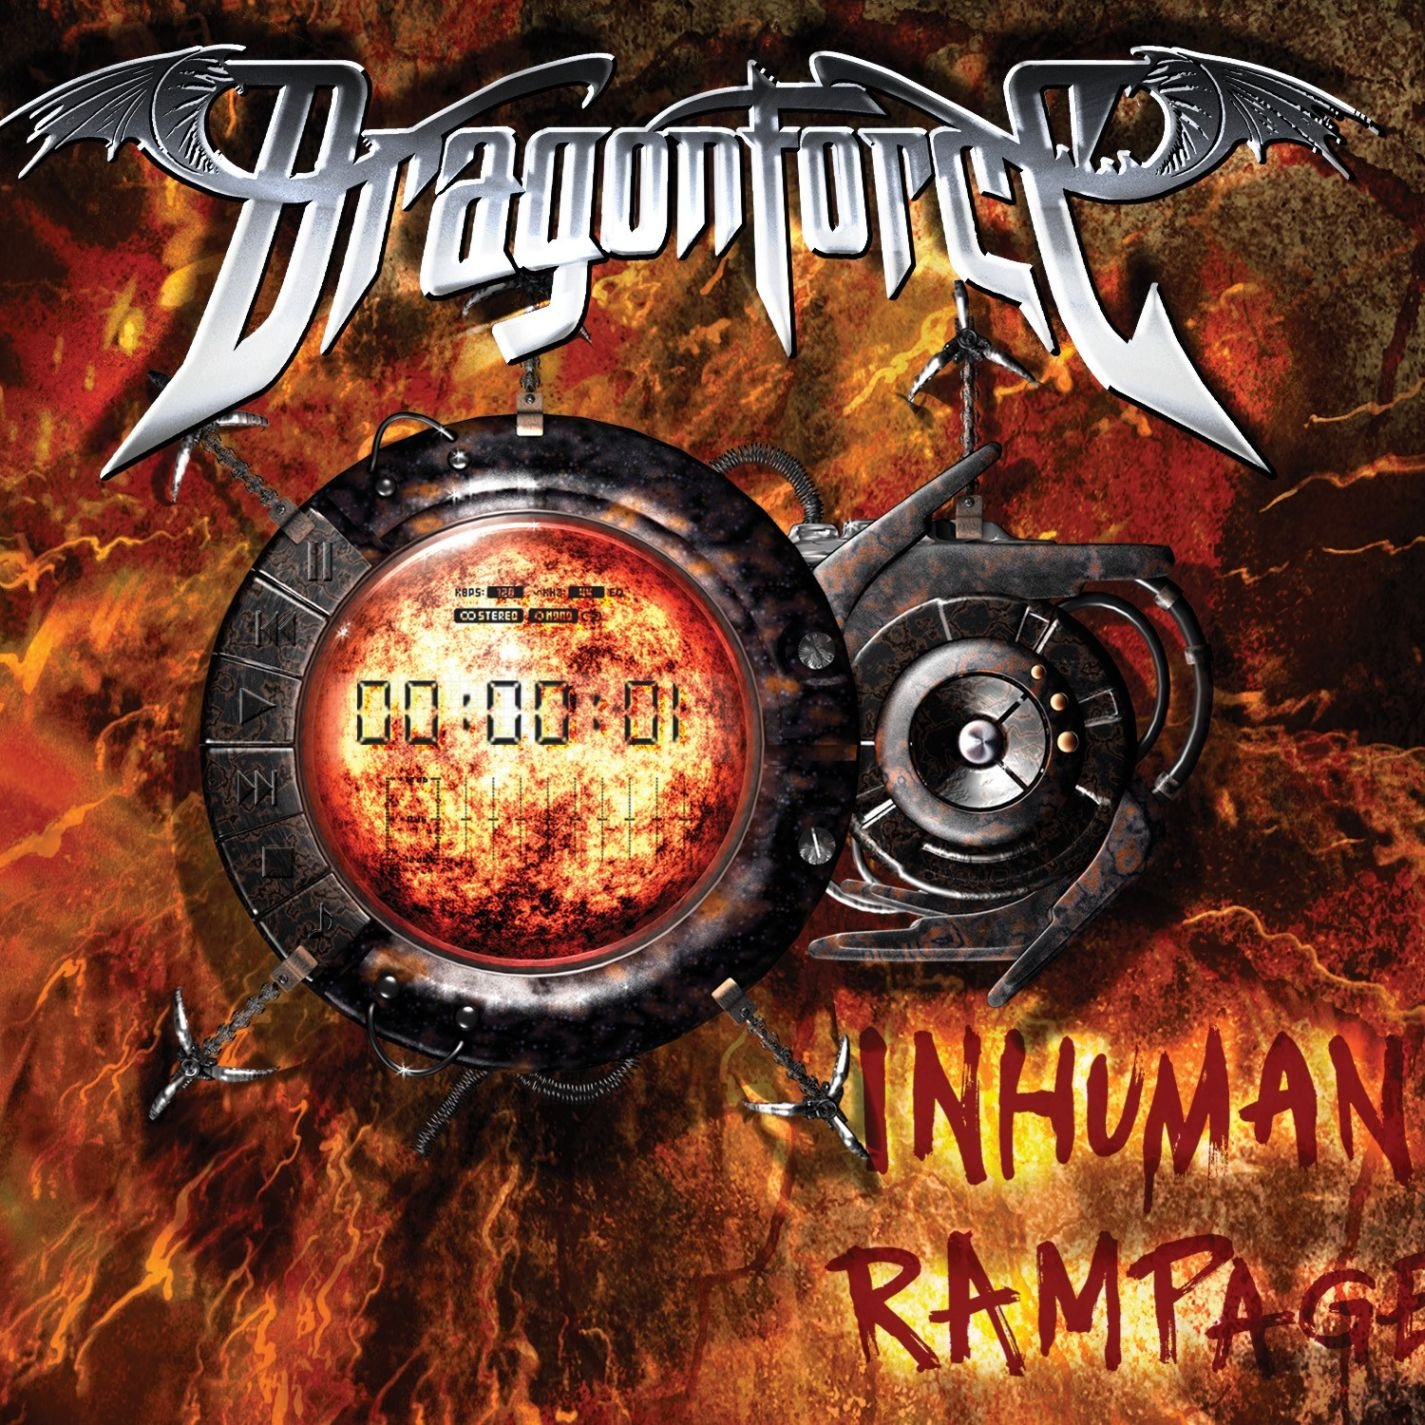 Inhuman Rampage (Spcl Ed U.S.) by Roadrunner Records